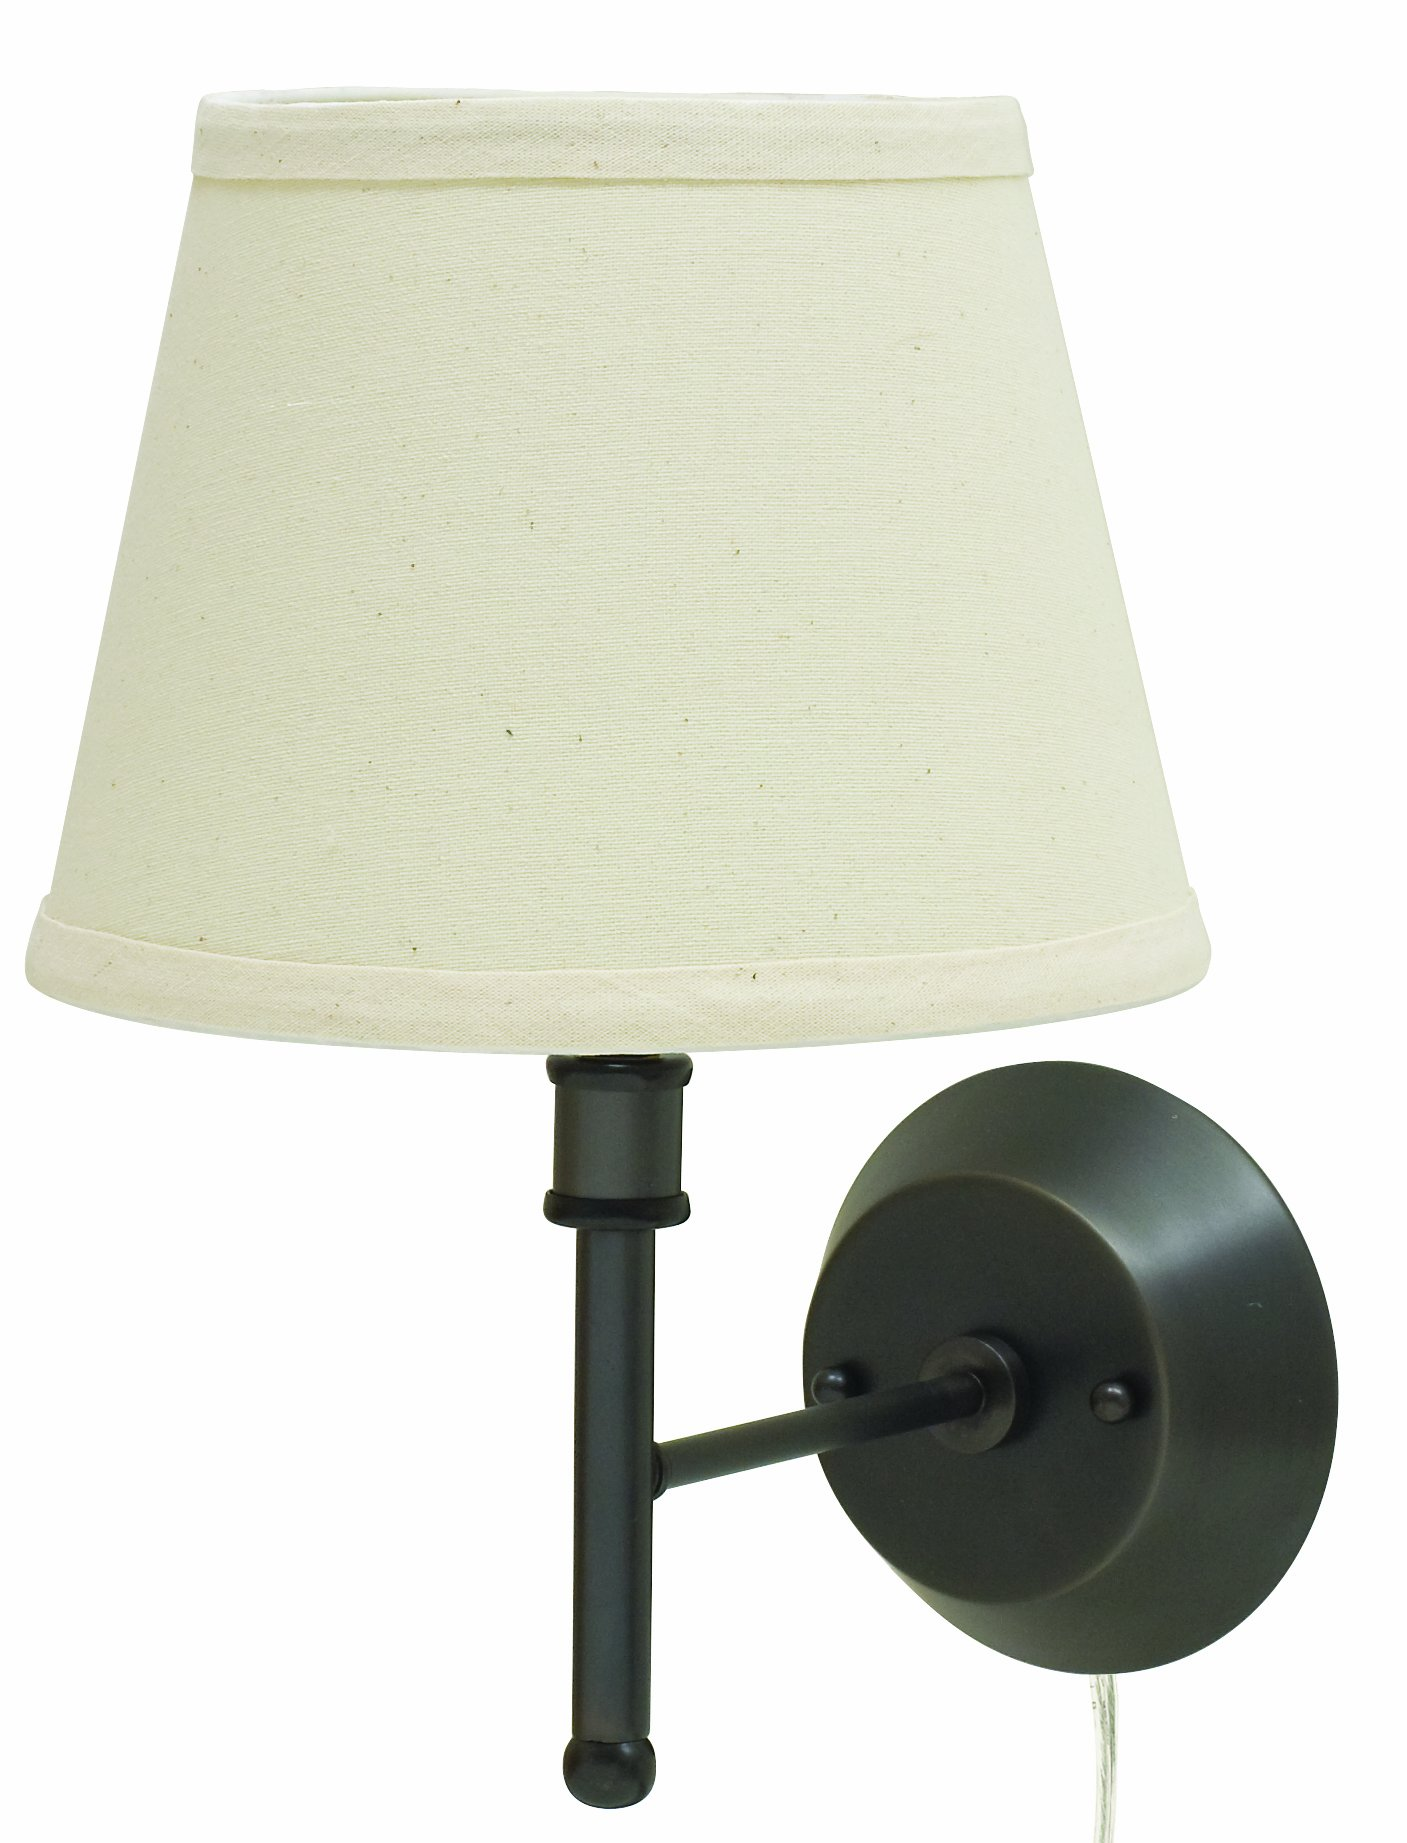 House of Troy GR901-OB Greensboro Collection 13-Inch Portable Wall Lamp, Oil Rubbed Bronze